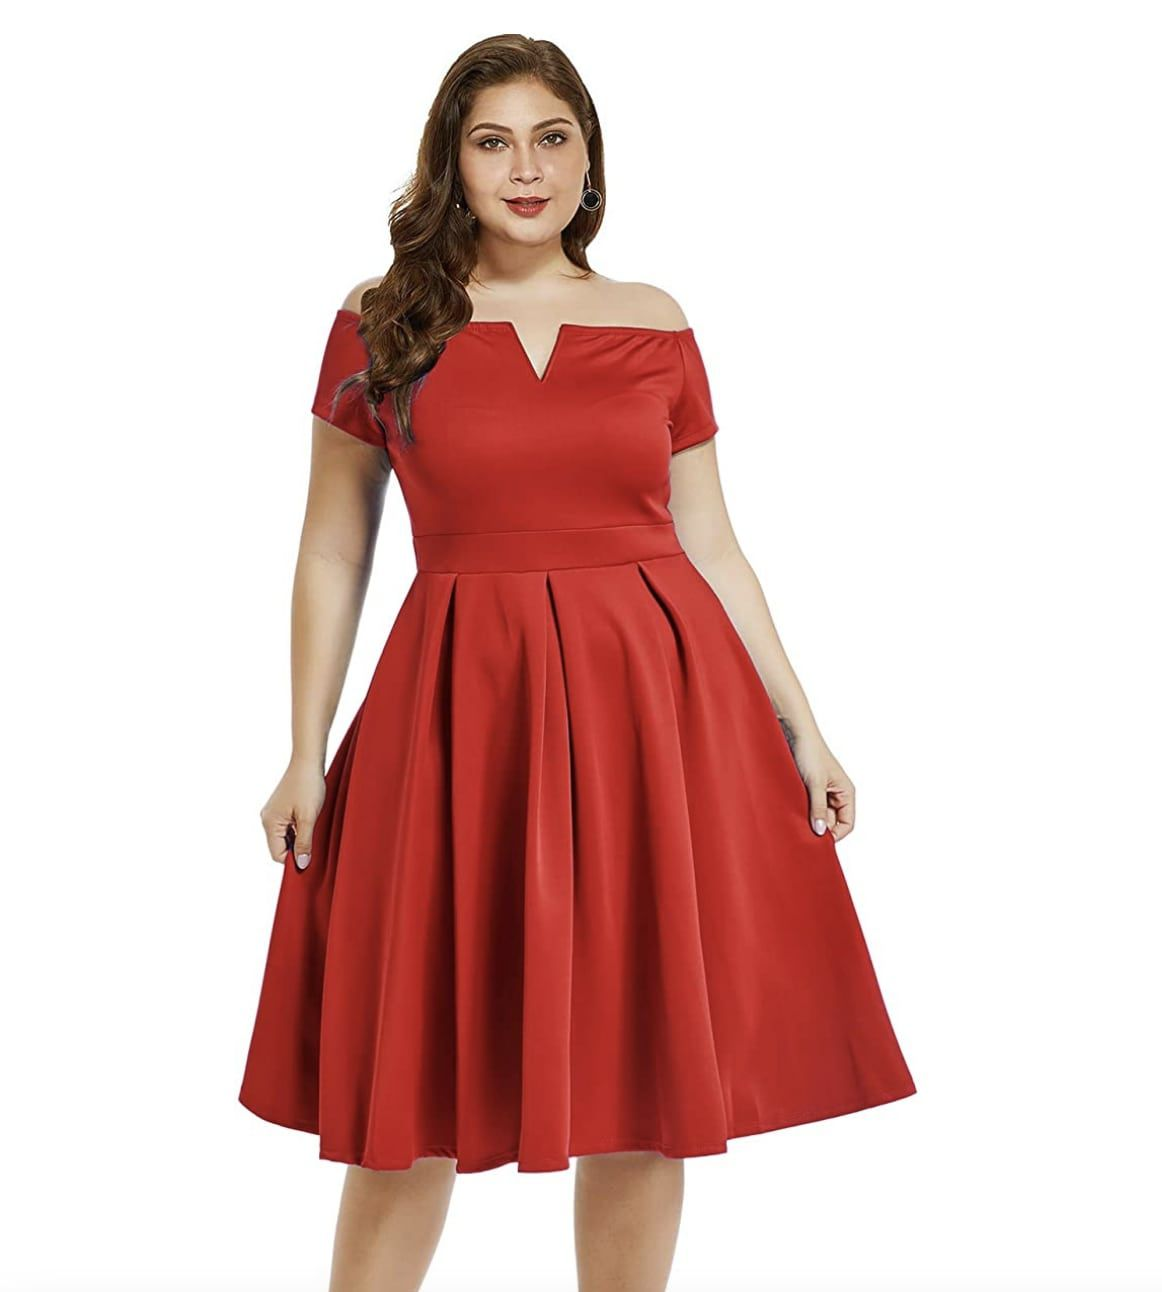 Style B07BPXV9LM Lalagen Red Size 18 Flare Sweetheart Tall Height Wedding Guest Cocktail Dress on Queenly